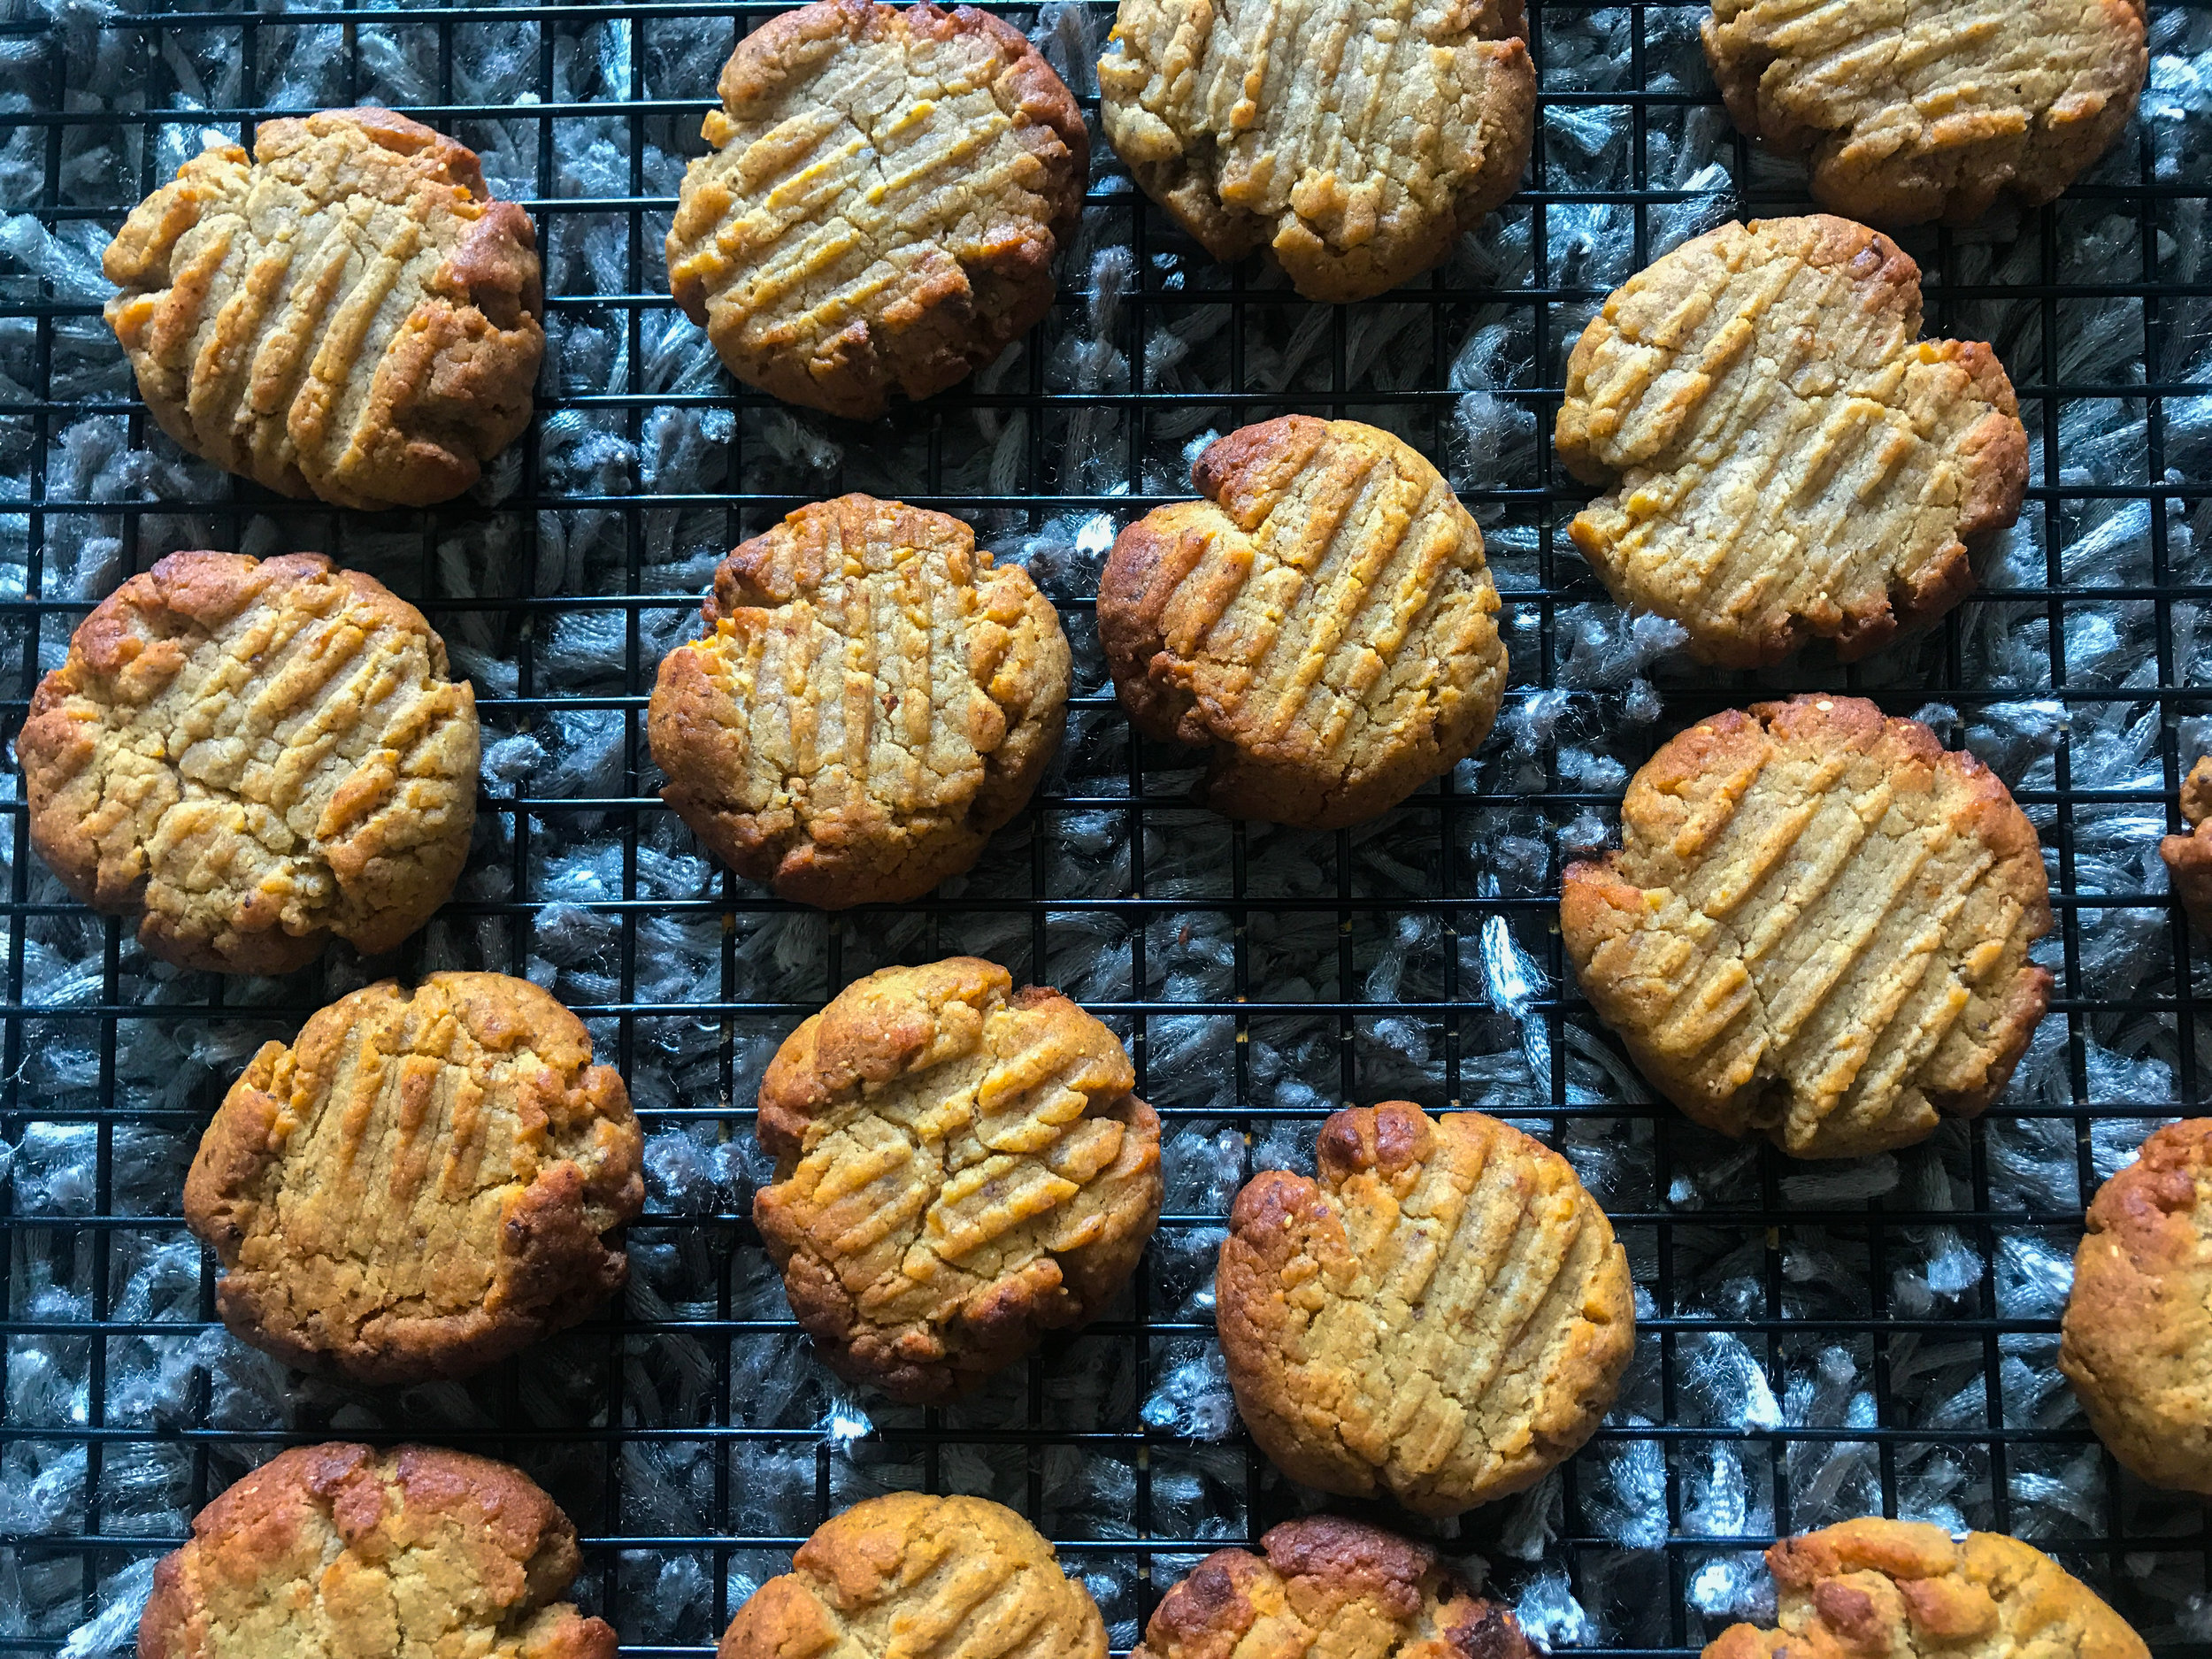 MISO ALMOND BUTTER COOKIES - #SIAintheKitchen